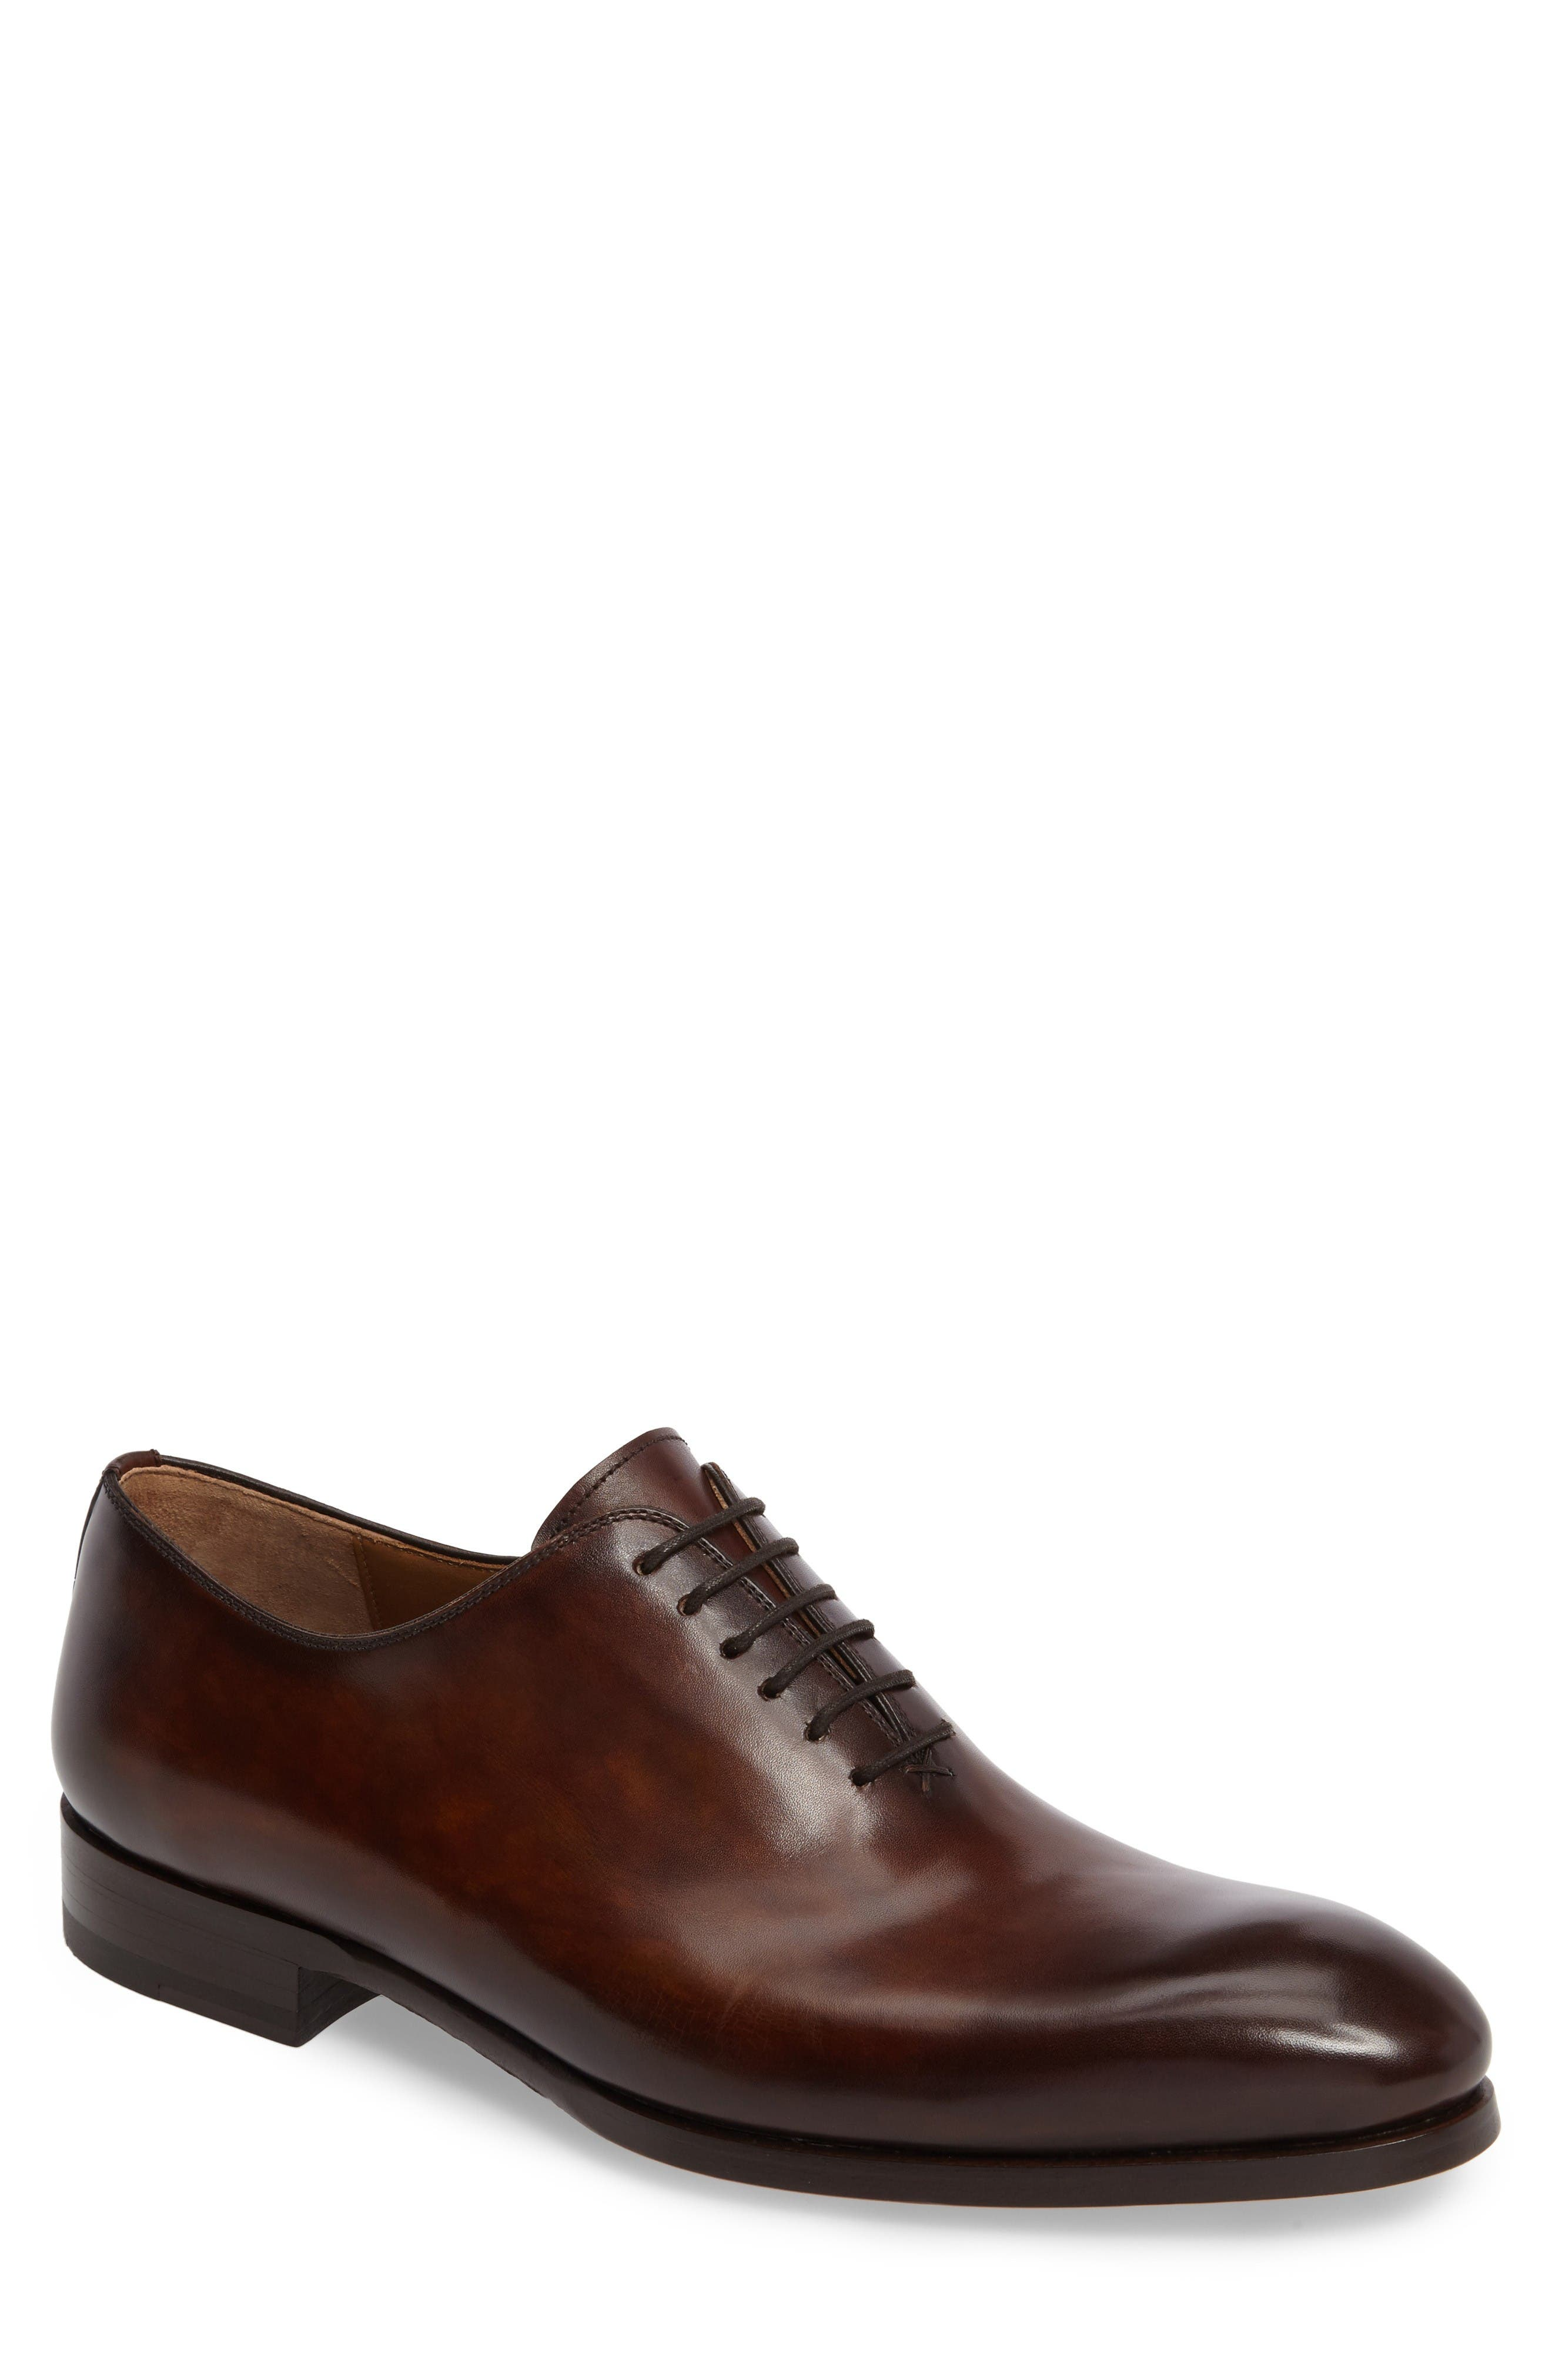 Alternate Image 1 Selected - Magnanni Montay Wholecut Oxford (Men)